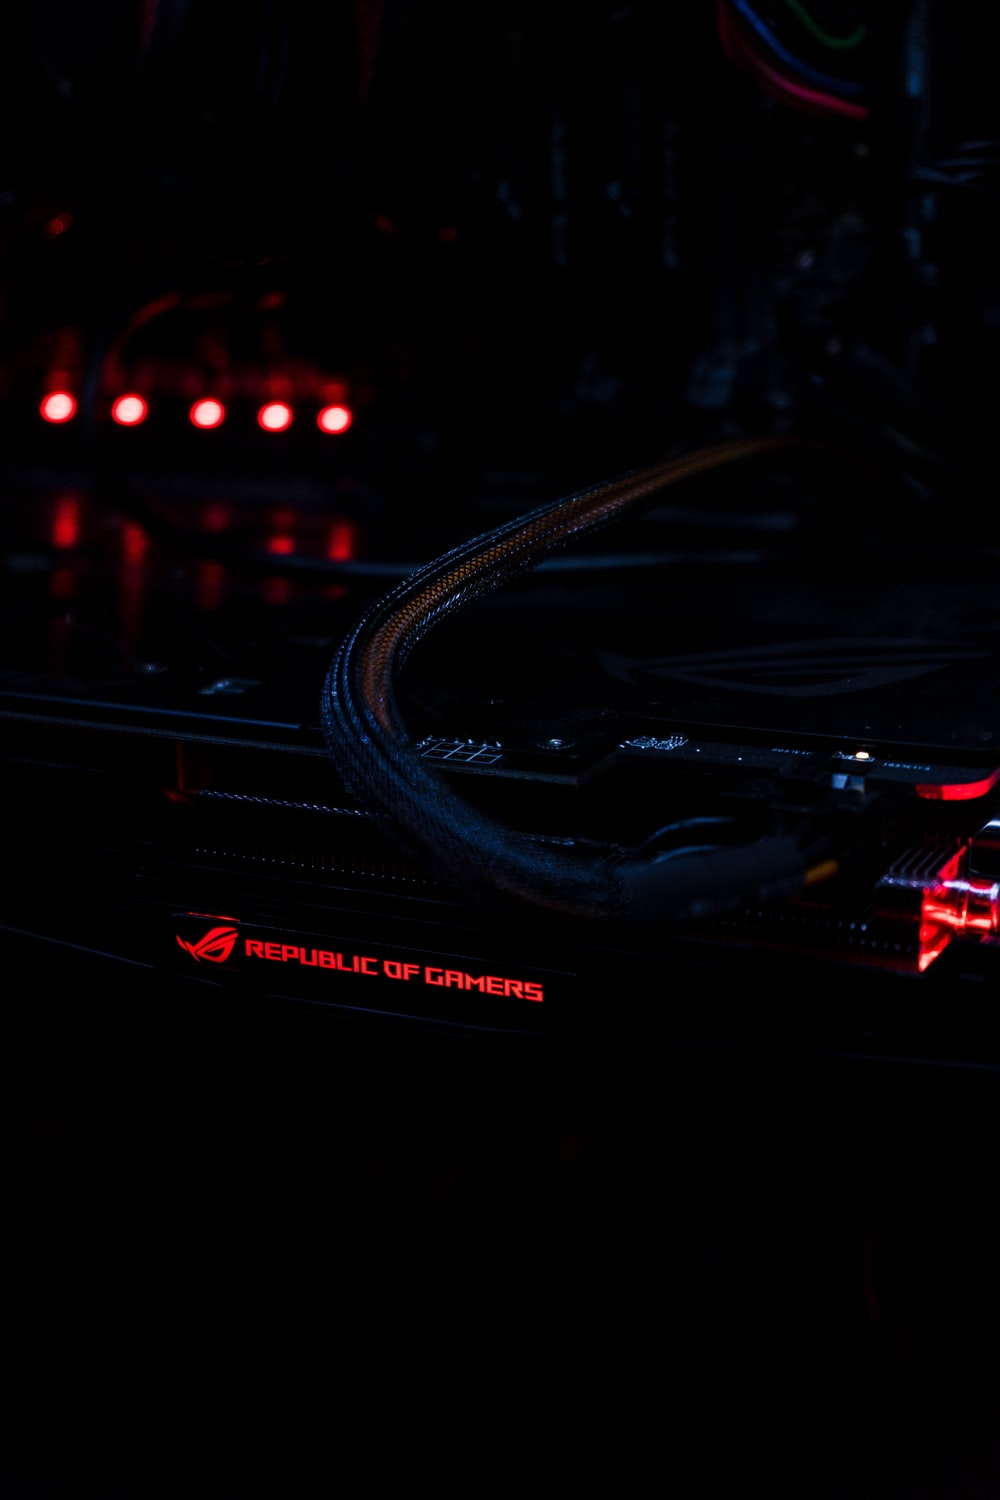 turned-on Republic of Gamers laptop